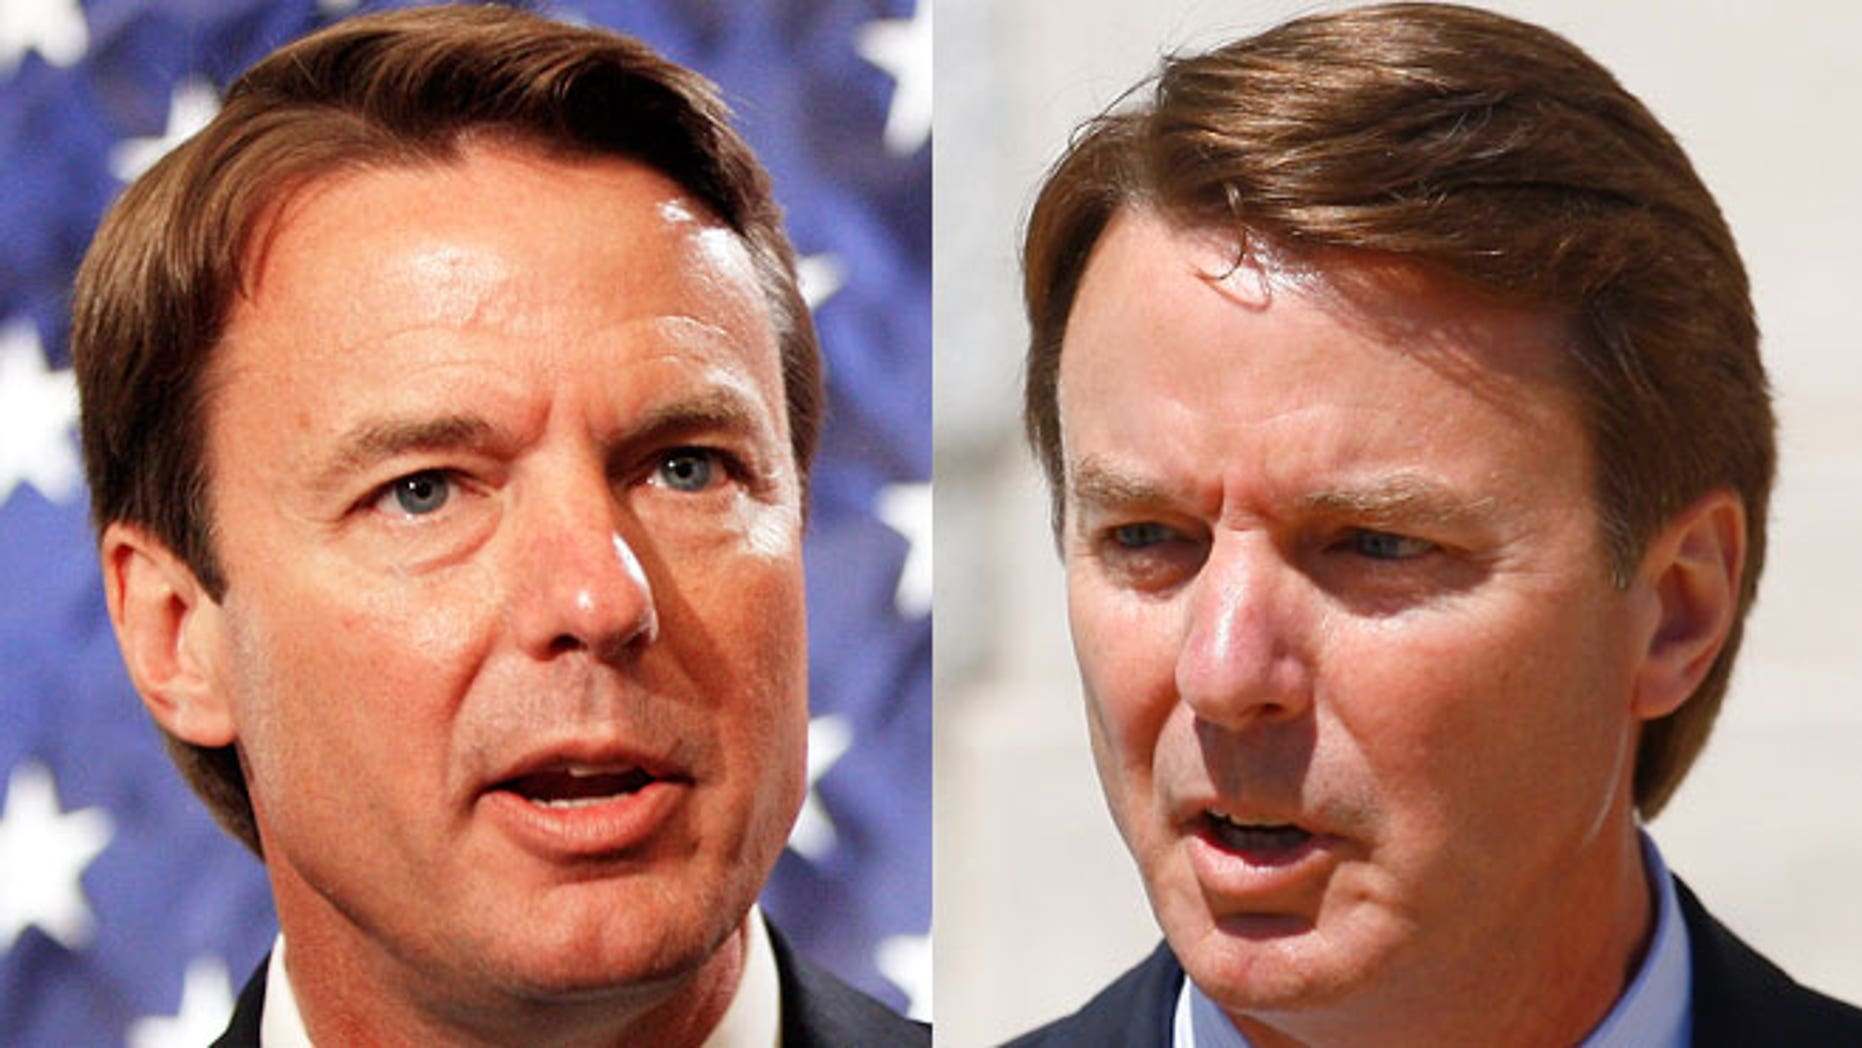 On the left, John Edwards campaigns in 2007. On the right, John Edwards speaks outside a courtroom in 2012.